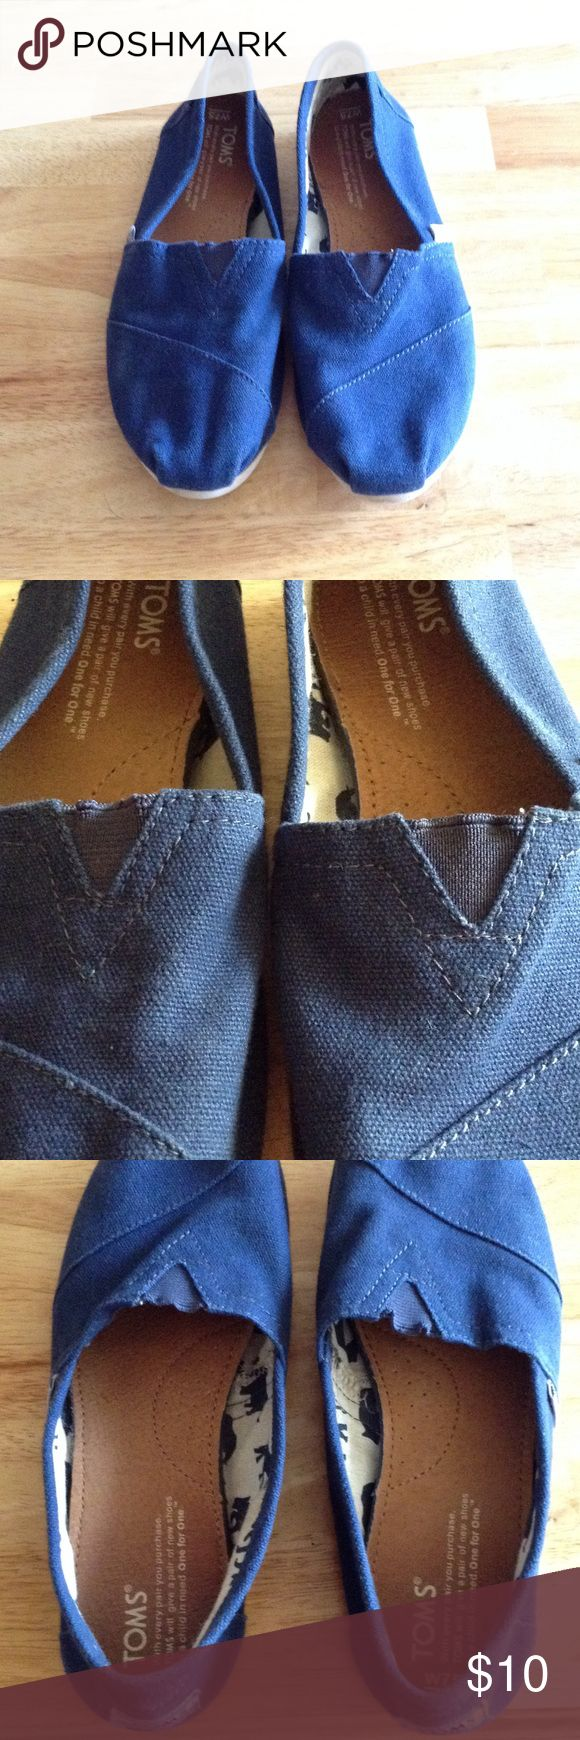 Navy Blue Toms Navy Blue Toms. Size 7.5. Elastic is stretched out on both shoes, but there are barely any other signs of wear. TOMS Shoes Flats & Loafers